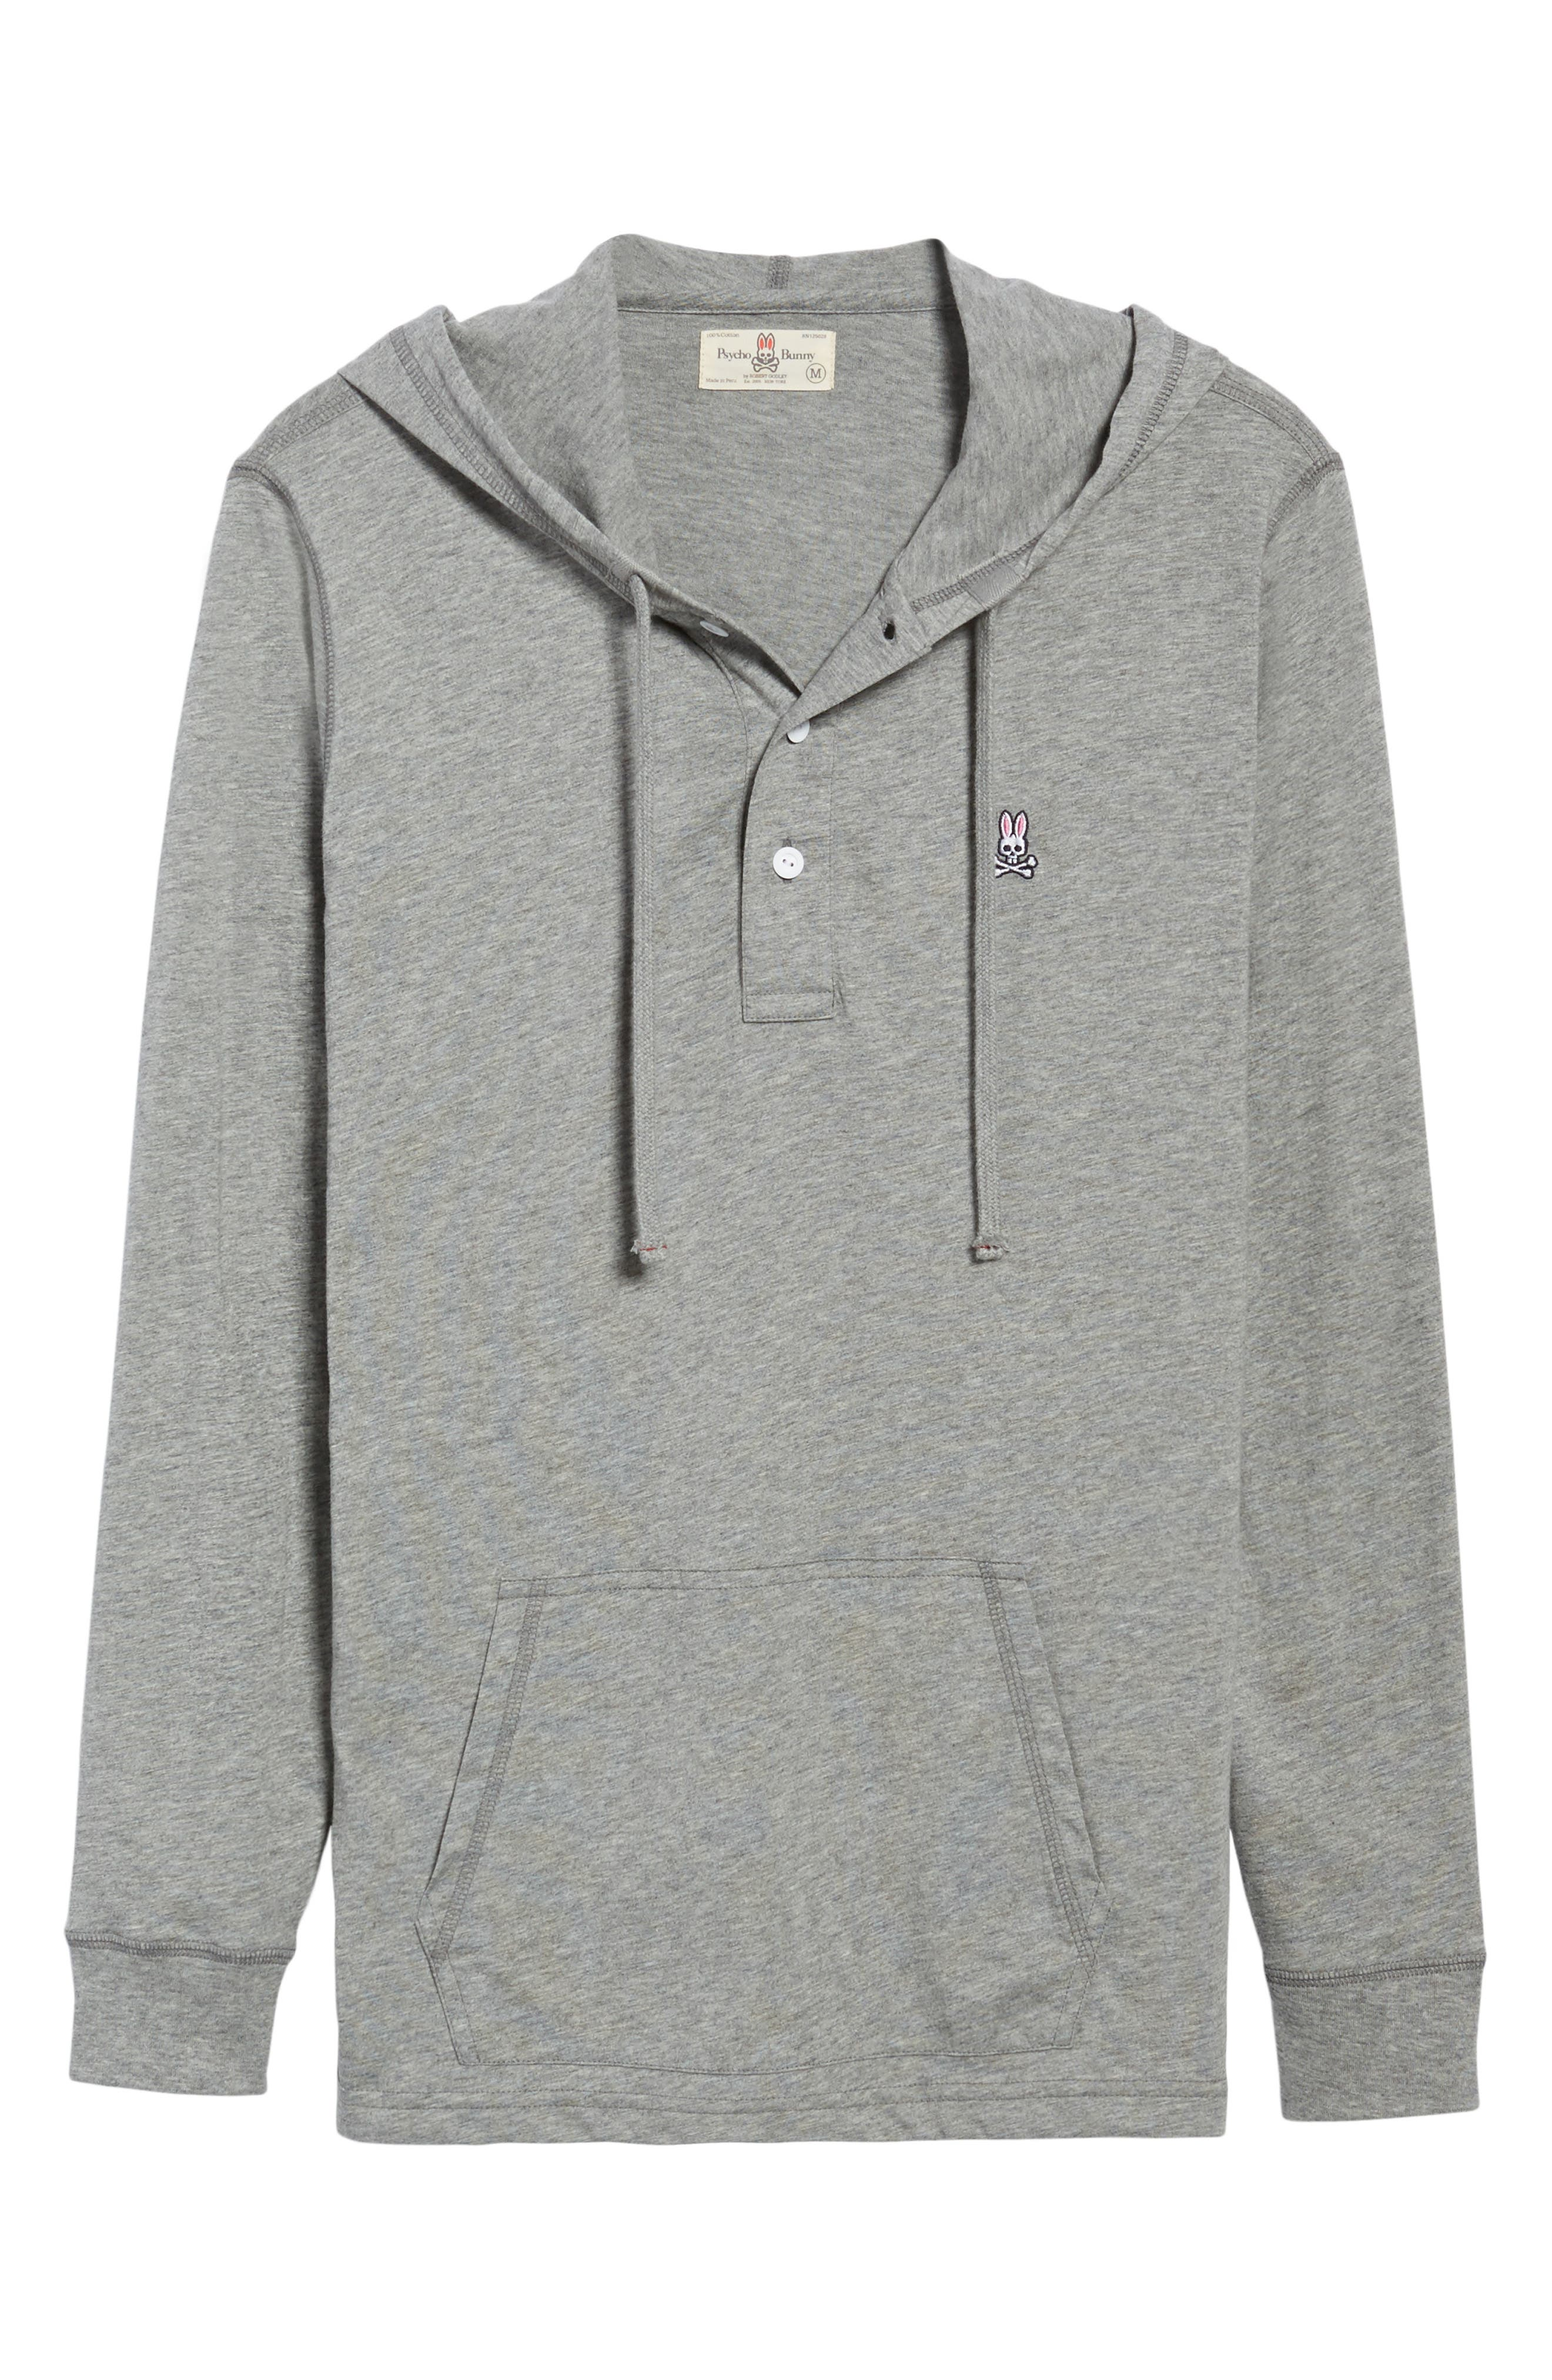 Delano Henley Hoodie,                             Alternate thumbnail 6, color,                             Heather Grey